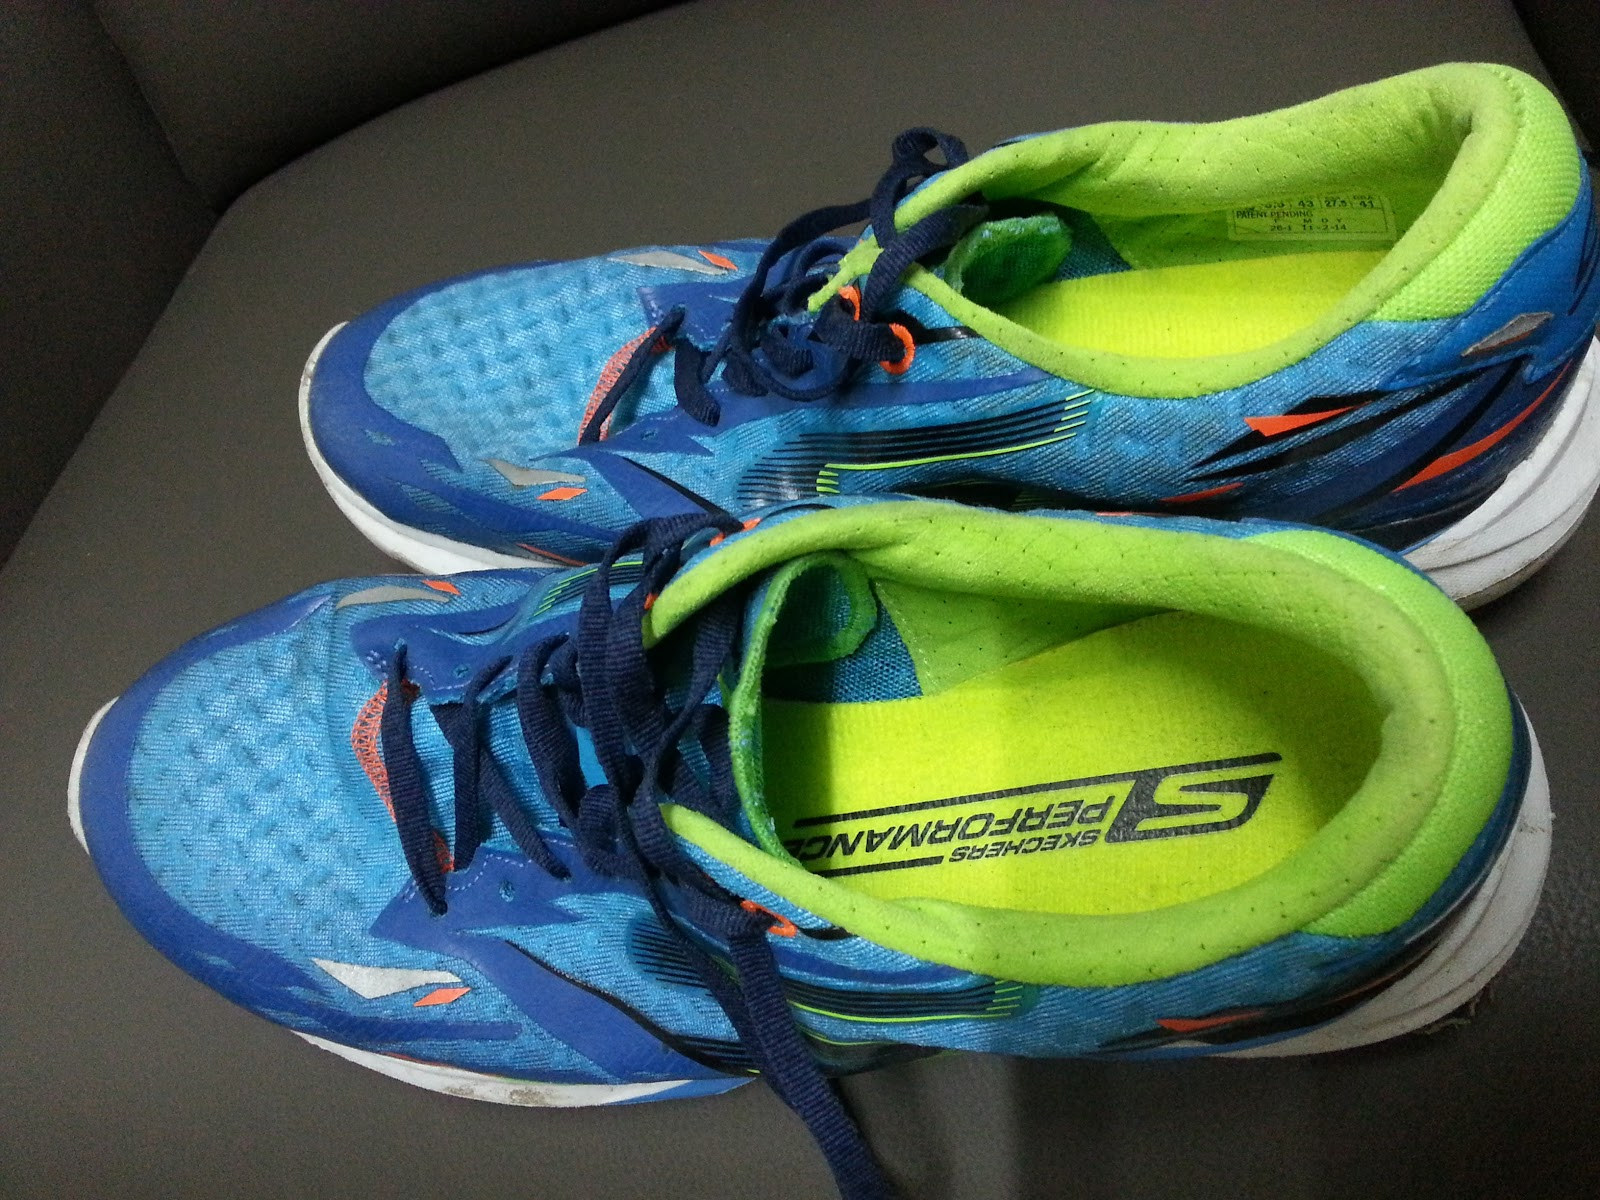 85c802939d60 ... GoMeb Speed 3 here  Specification. Since I have started to learn  midfoot running with Skechers GoRun series